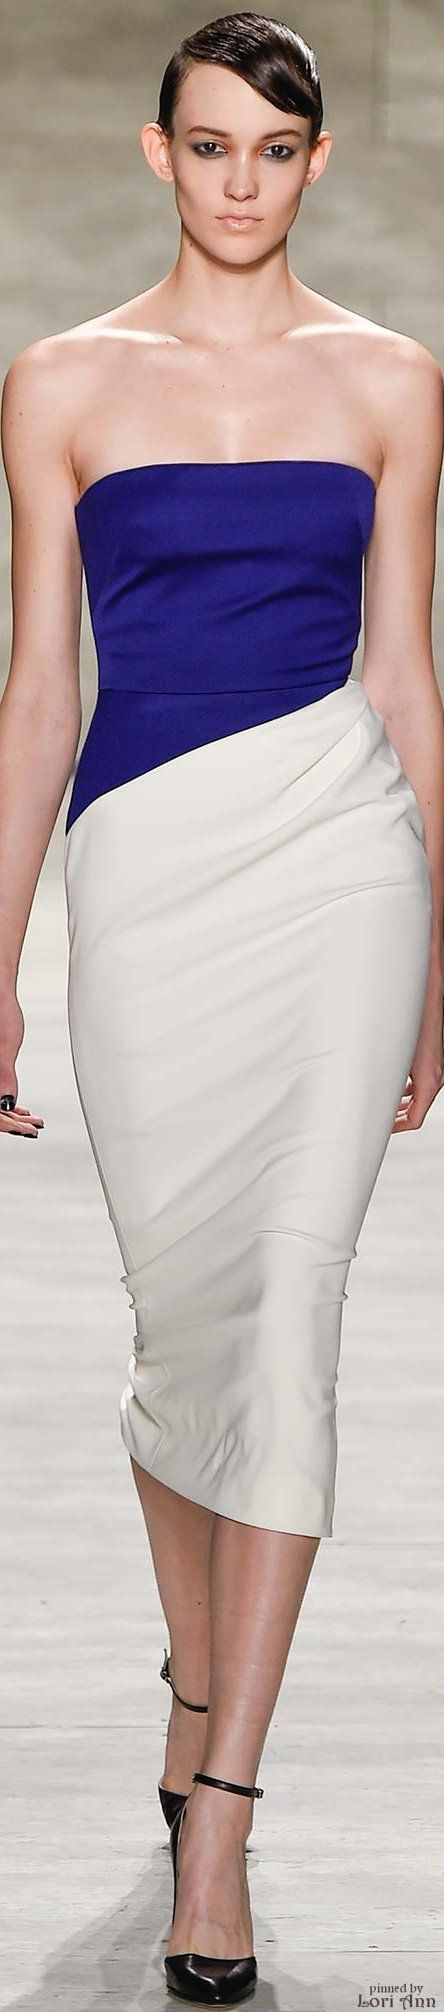 Bibhu Mohapatra Fall 2015 RTW women fashion outfit clothing style apparel @roressclothes closet ideas